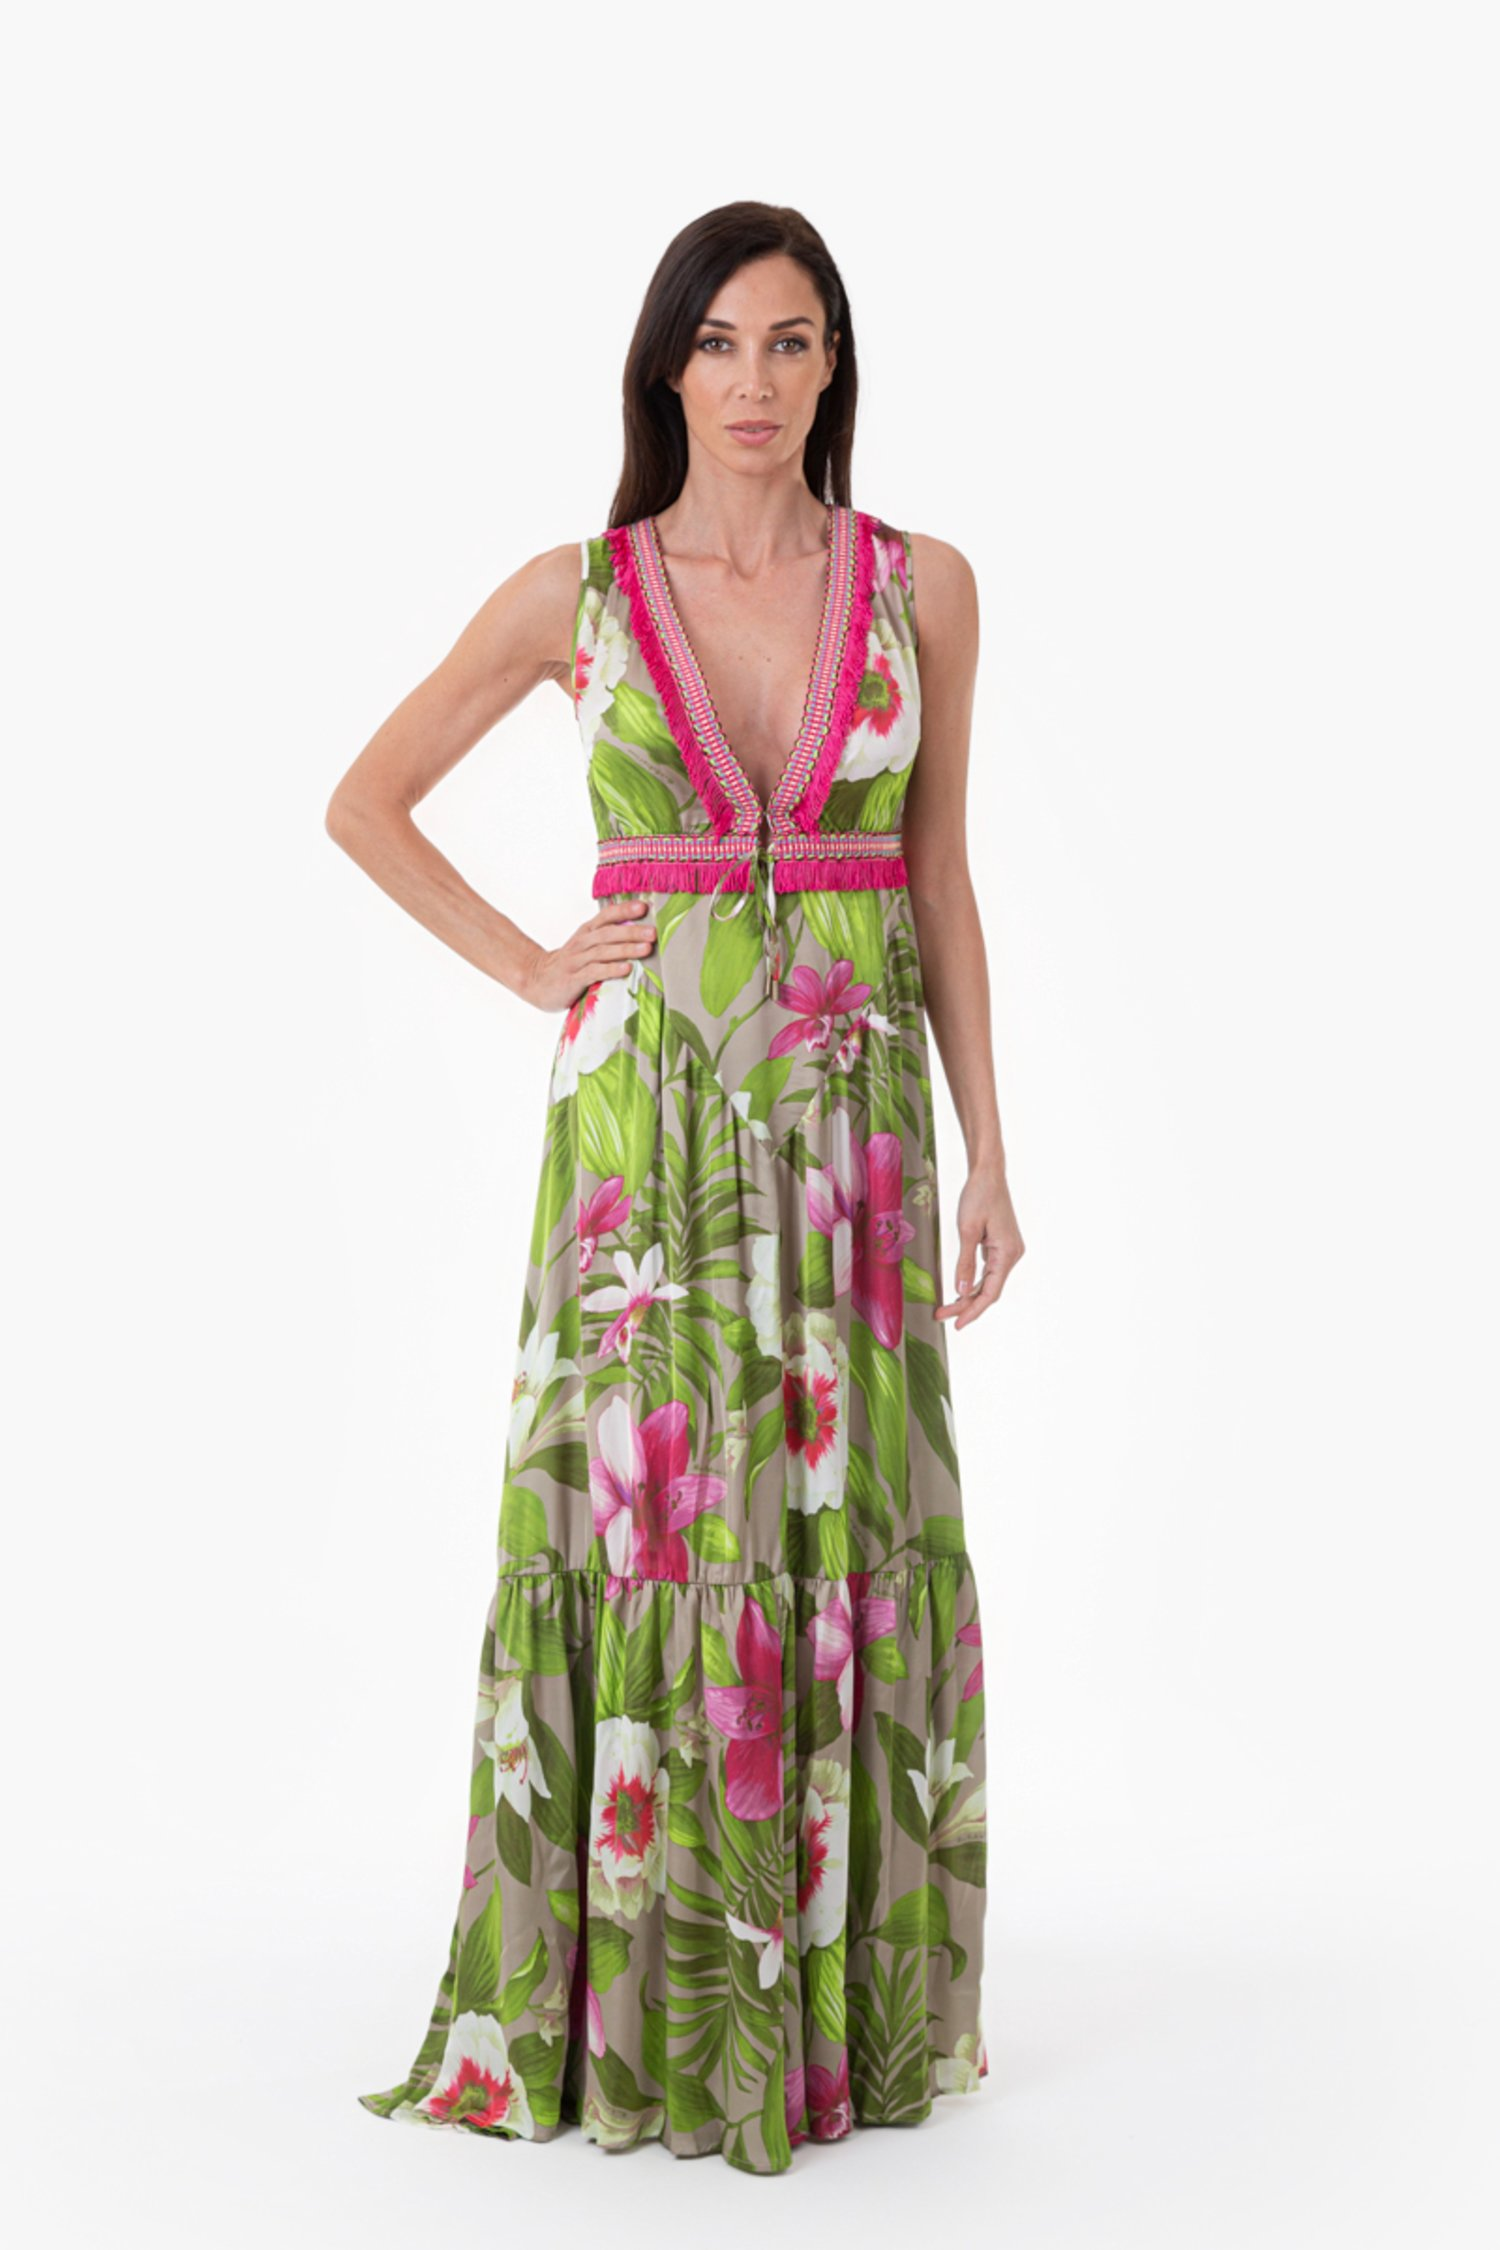 LONG DRESS TRIMMINGS FRINGES - Tropical Flowers Beige